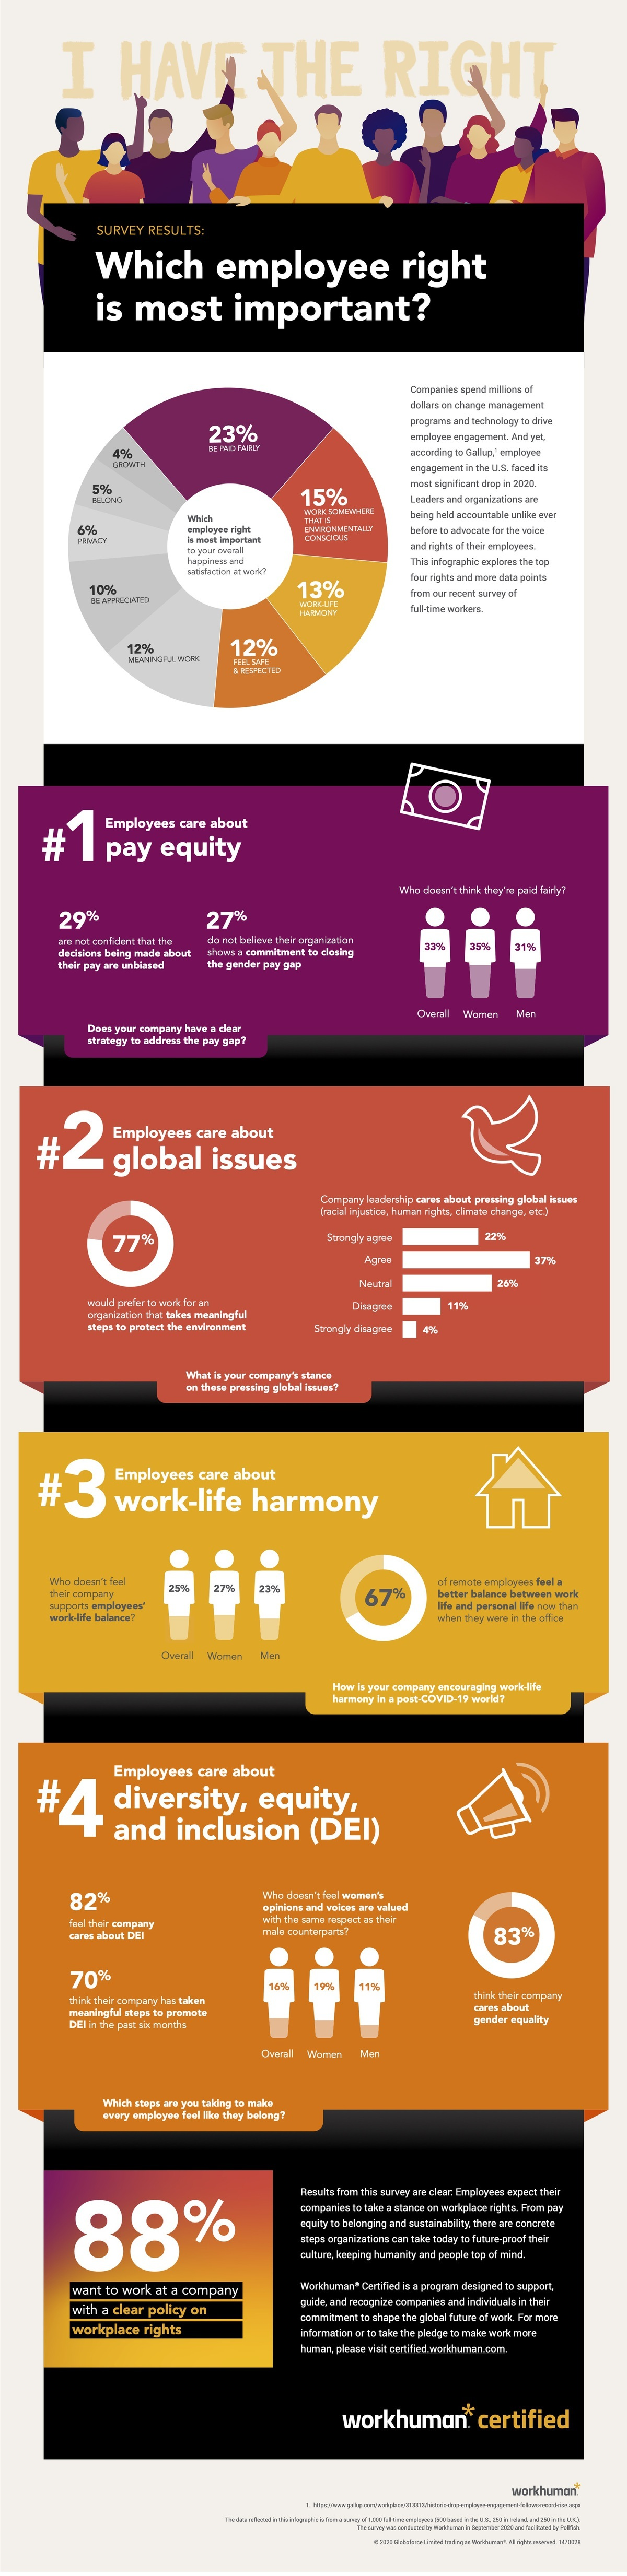 A Workhuman infographic on the most important employee rights.